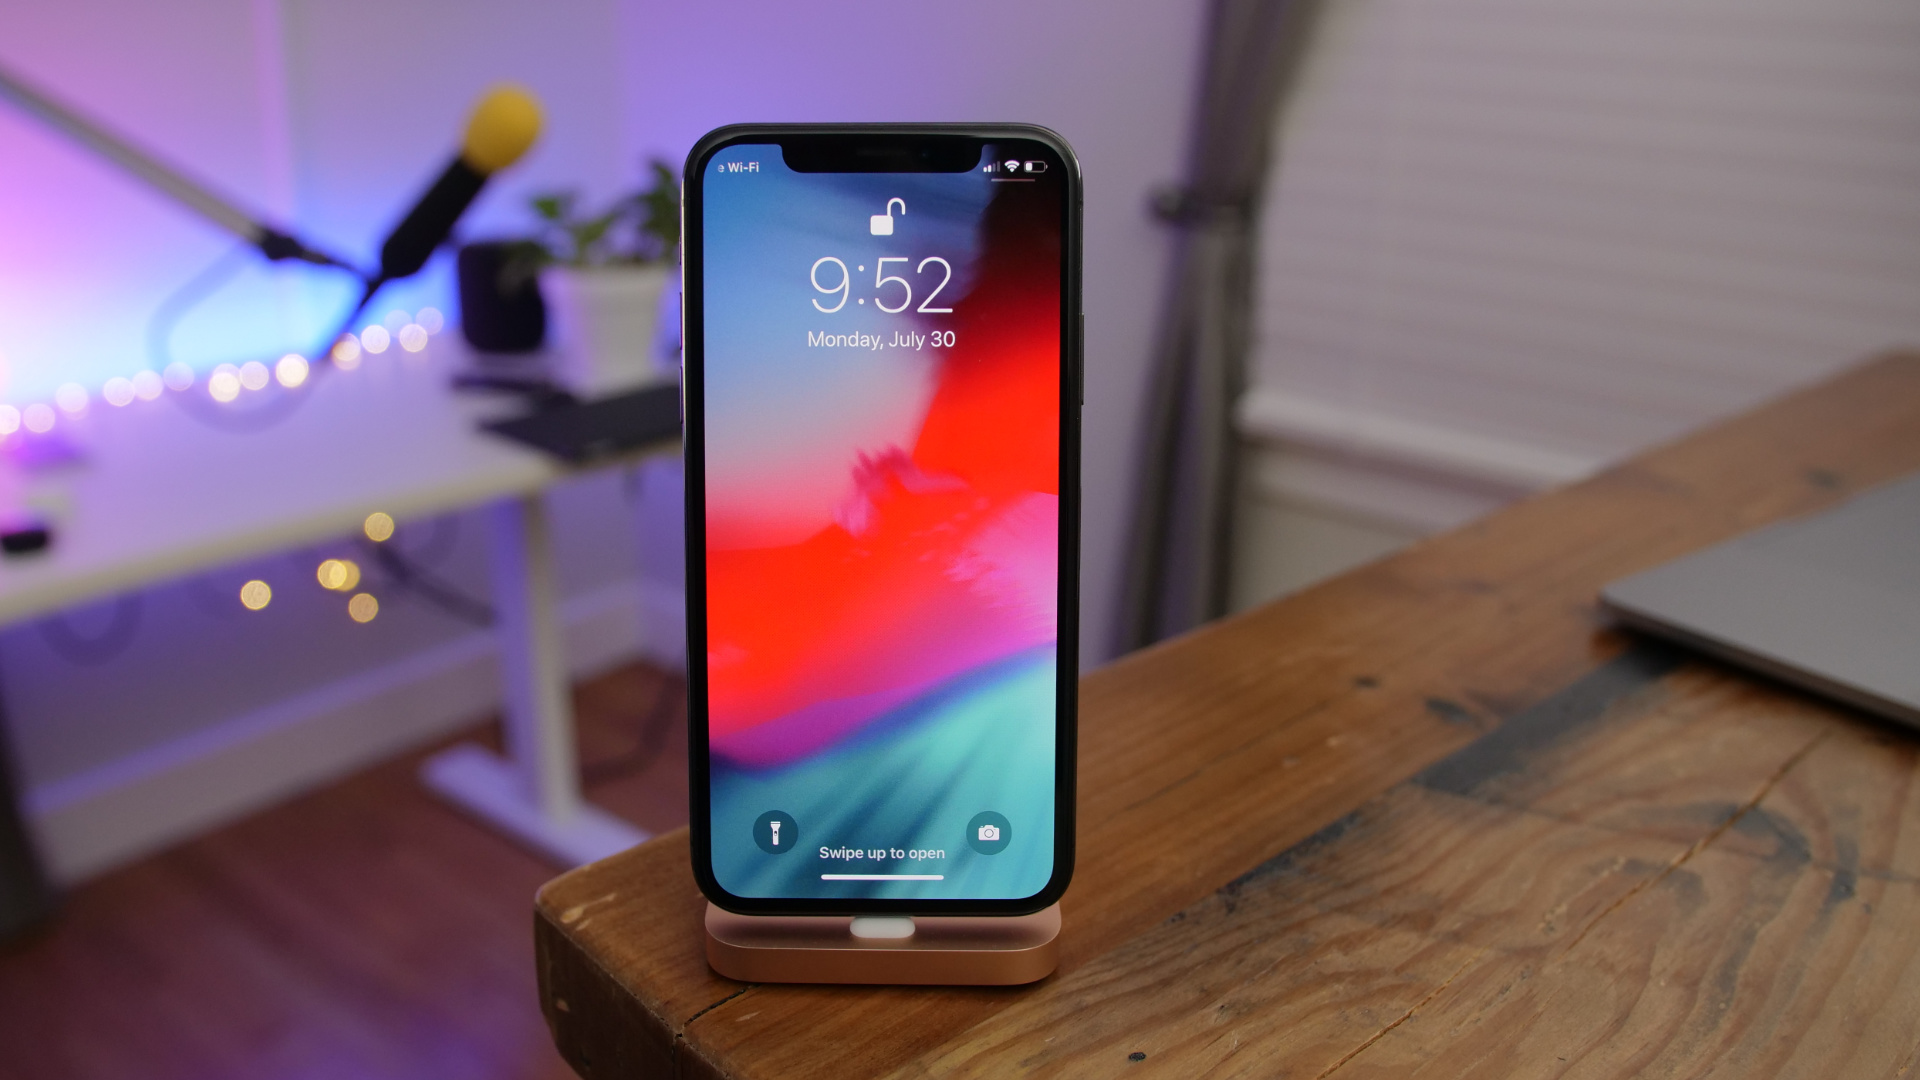 iOS 12 makes apps faster and more responsive while giving you more ways to connect more personalization and more to look forward to